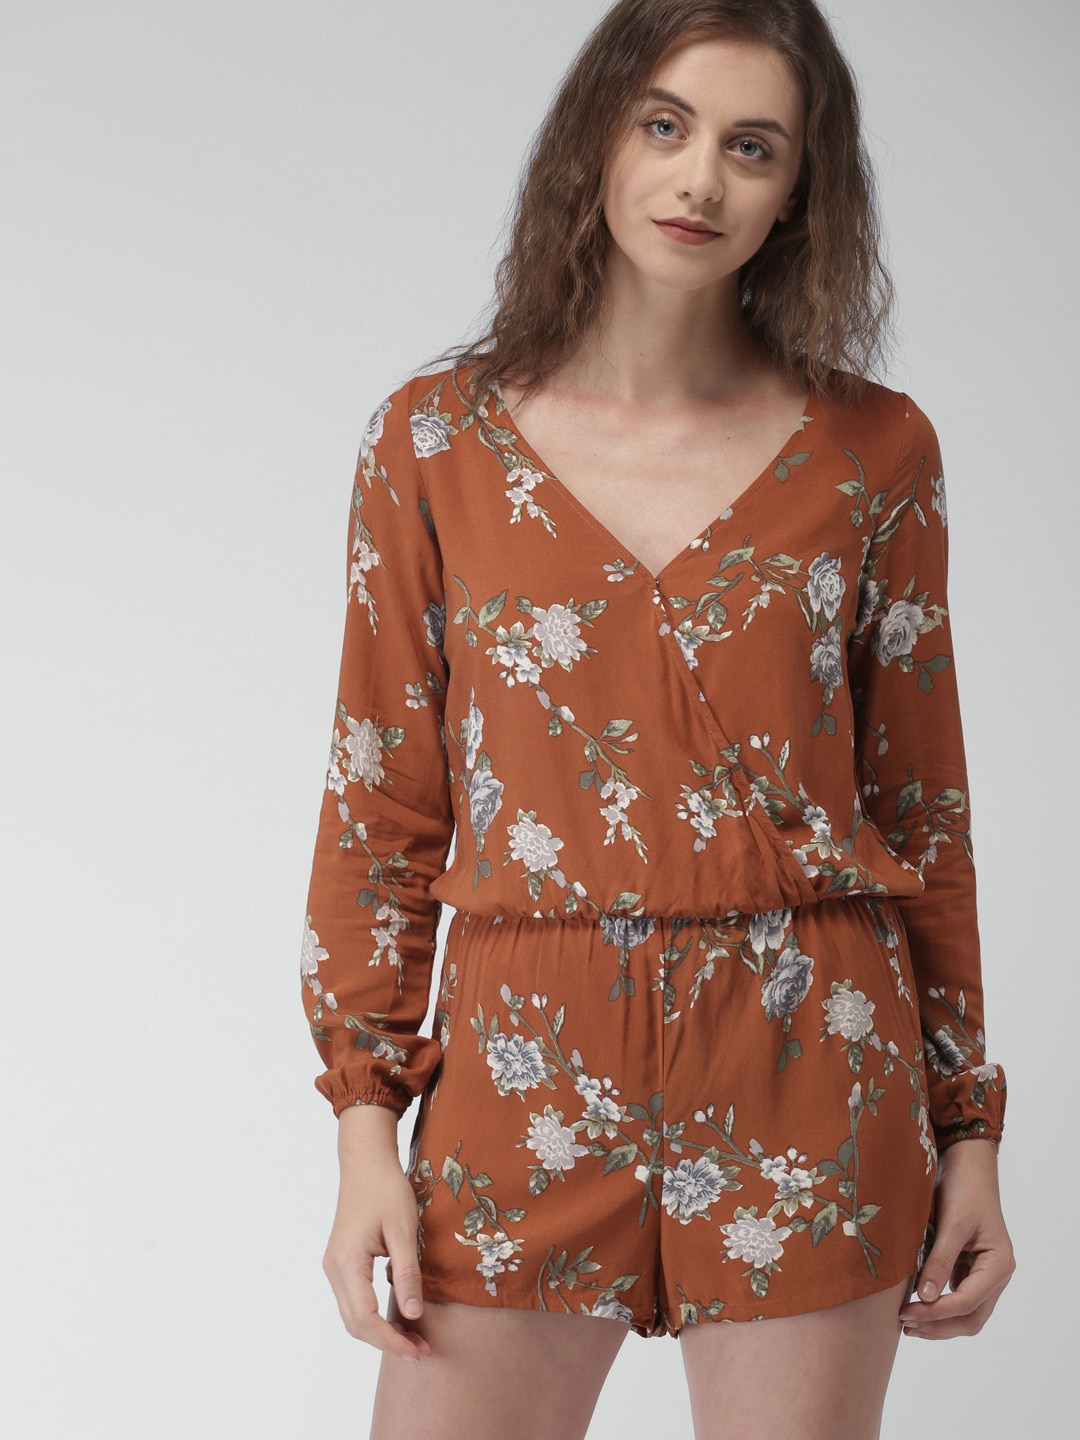 161b0e940e5 Women s Jumpsuits - Buy Jumpsuits for Women Online in India